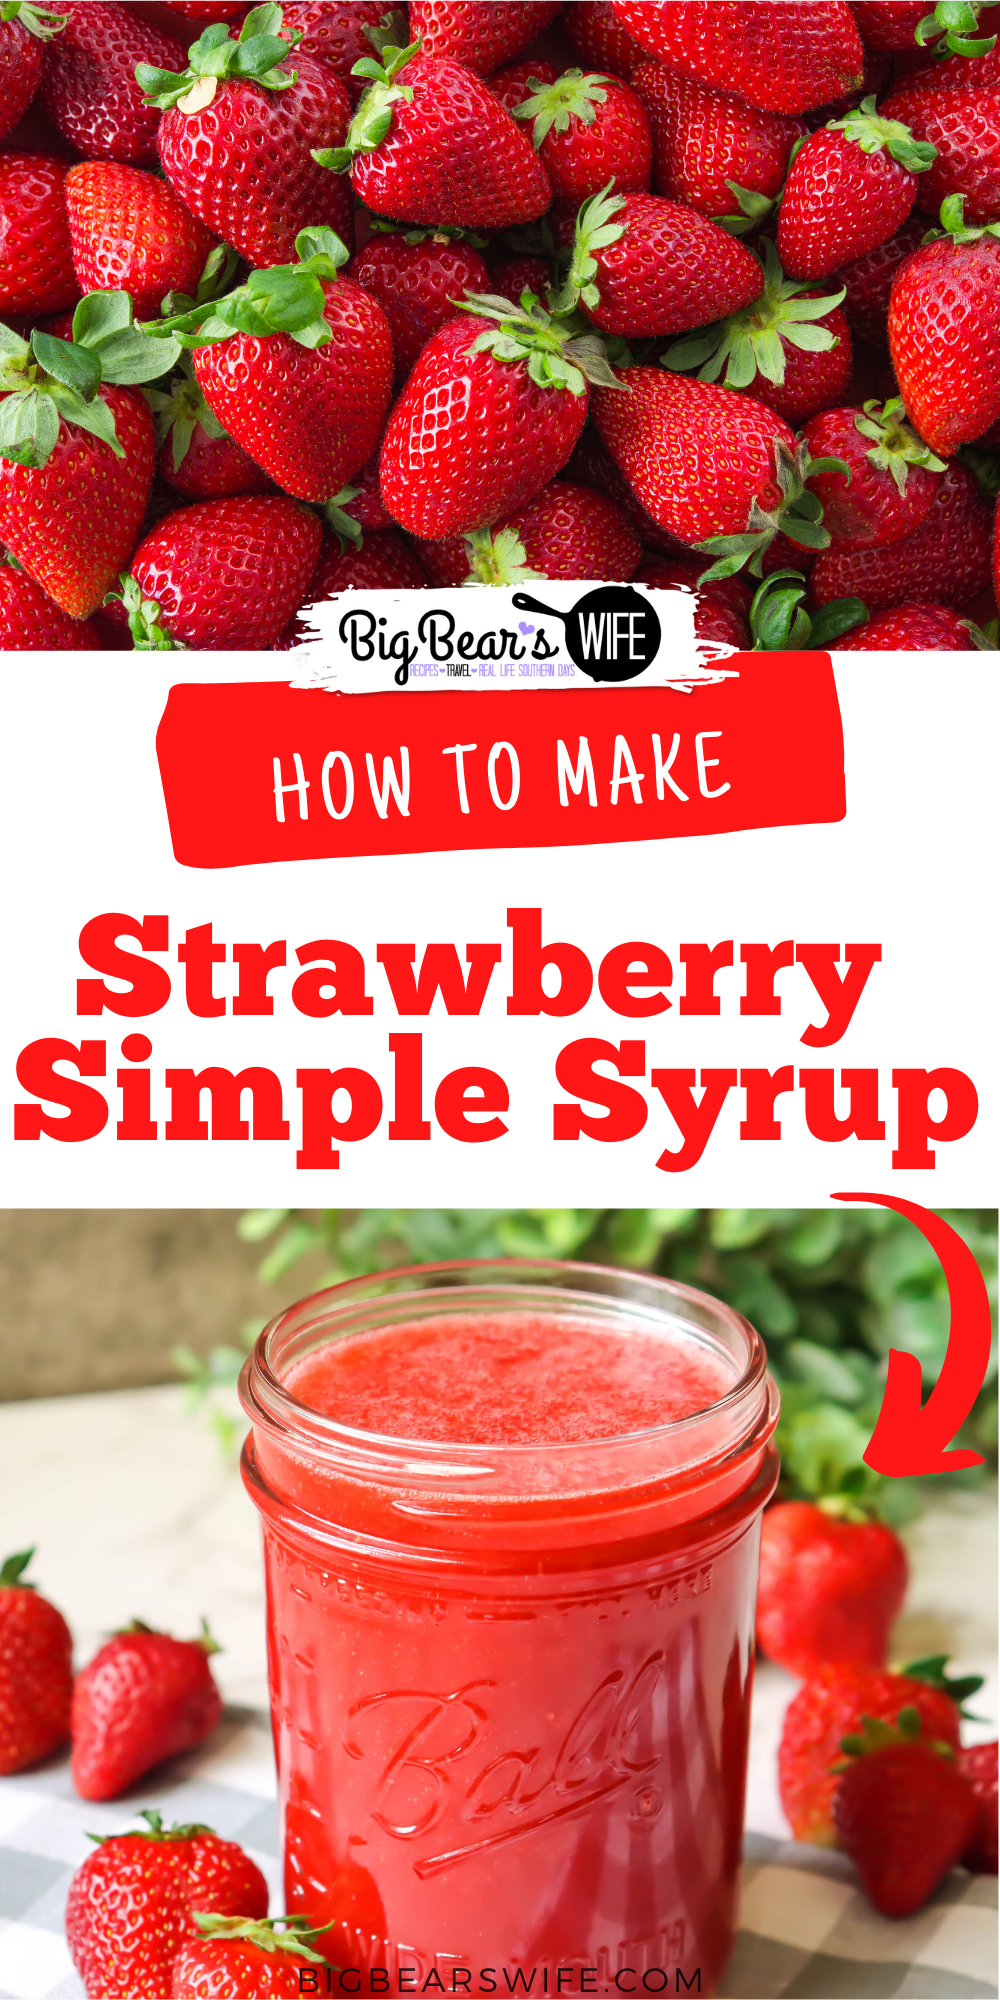 This This 3-ingredient homemade Strawberry Simple Syrup is great for Strawberry Lemonade and homemade summer cocktails and/or mocktails! via @bigbearswife